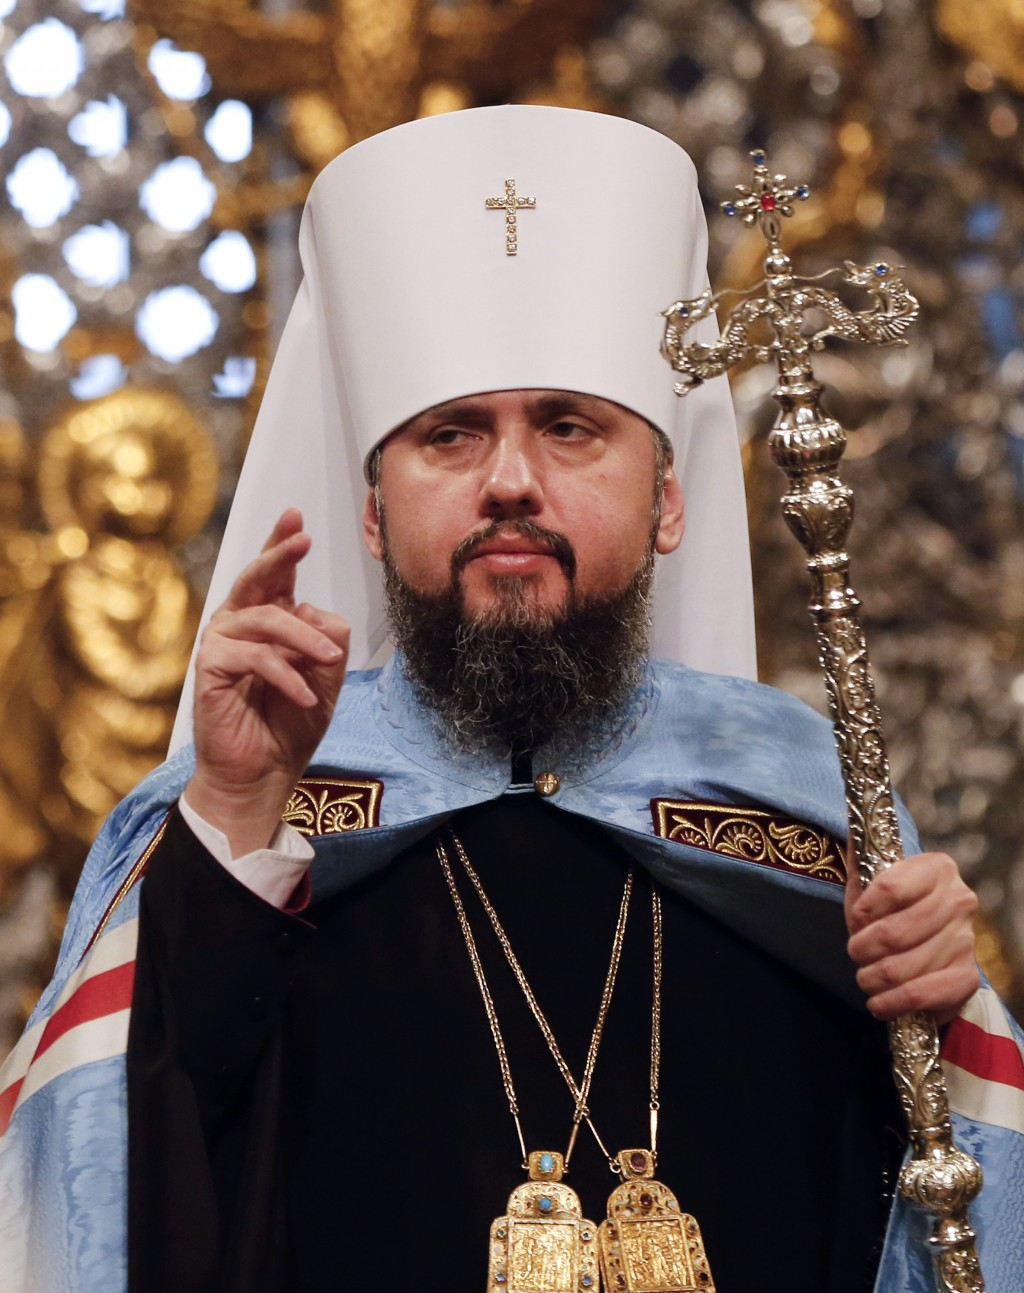 Metropolitan Epiphanius, the head of the independent Ukrainian Orthodox Church, leads the Christmas service in the St. Sophia Cathedral in Kiev, Ukrai...